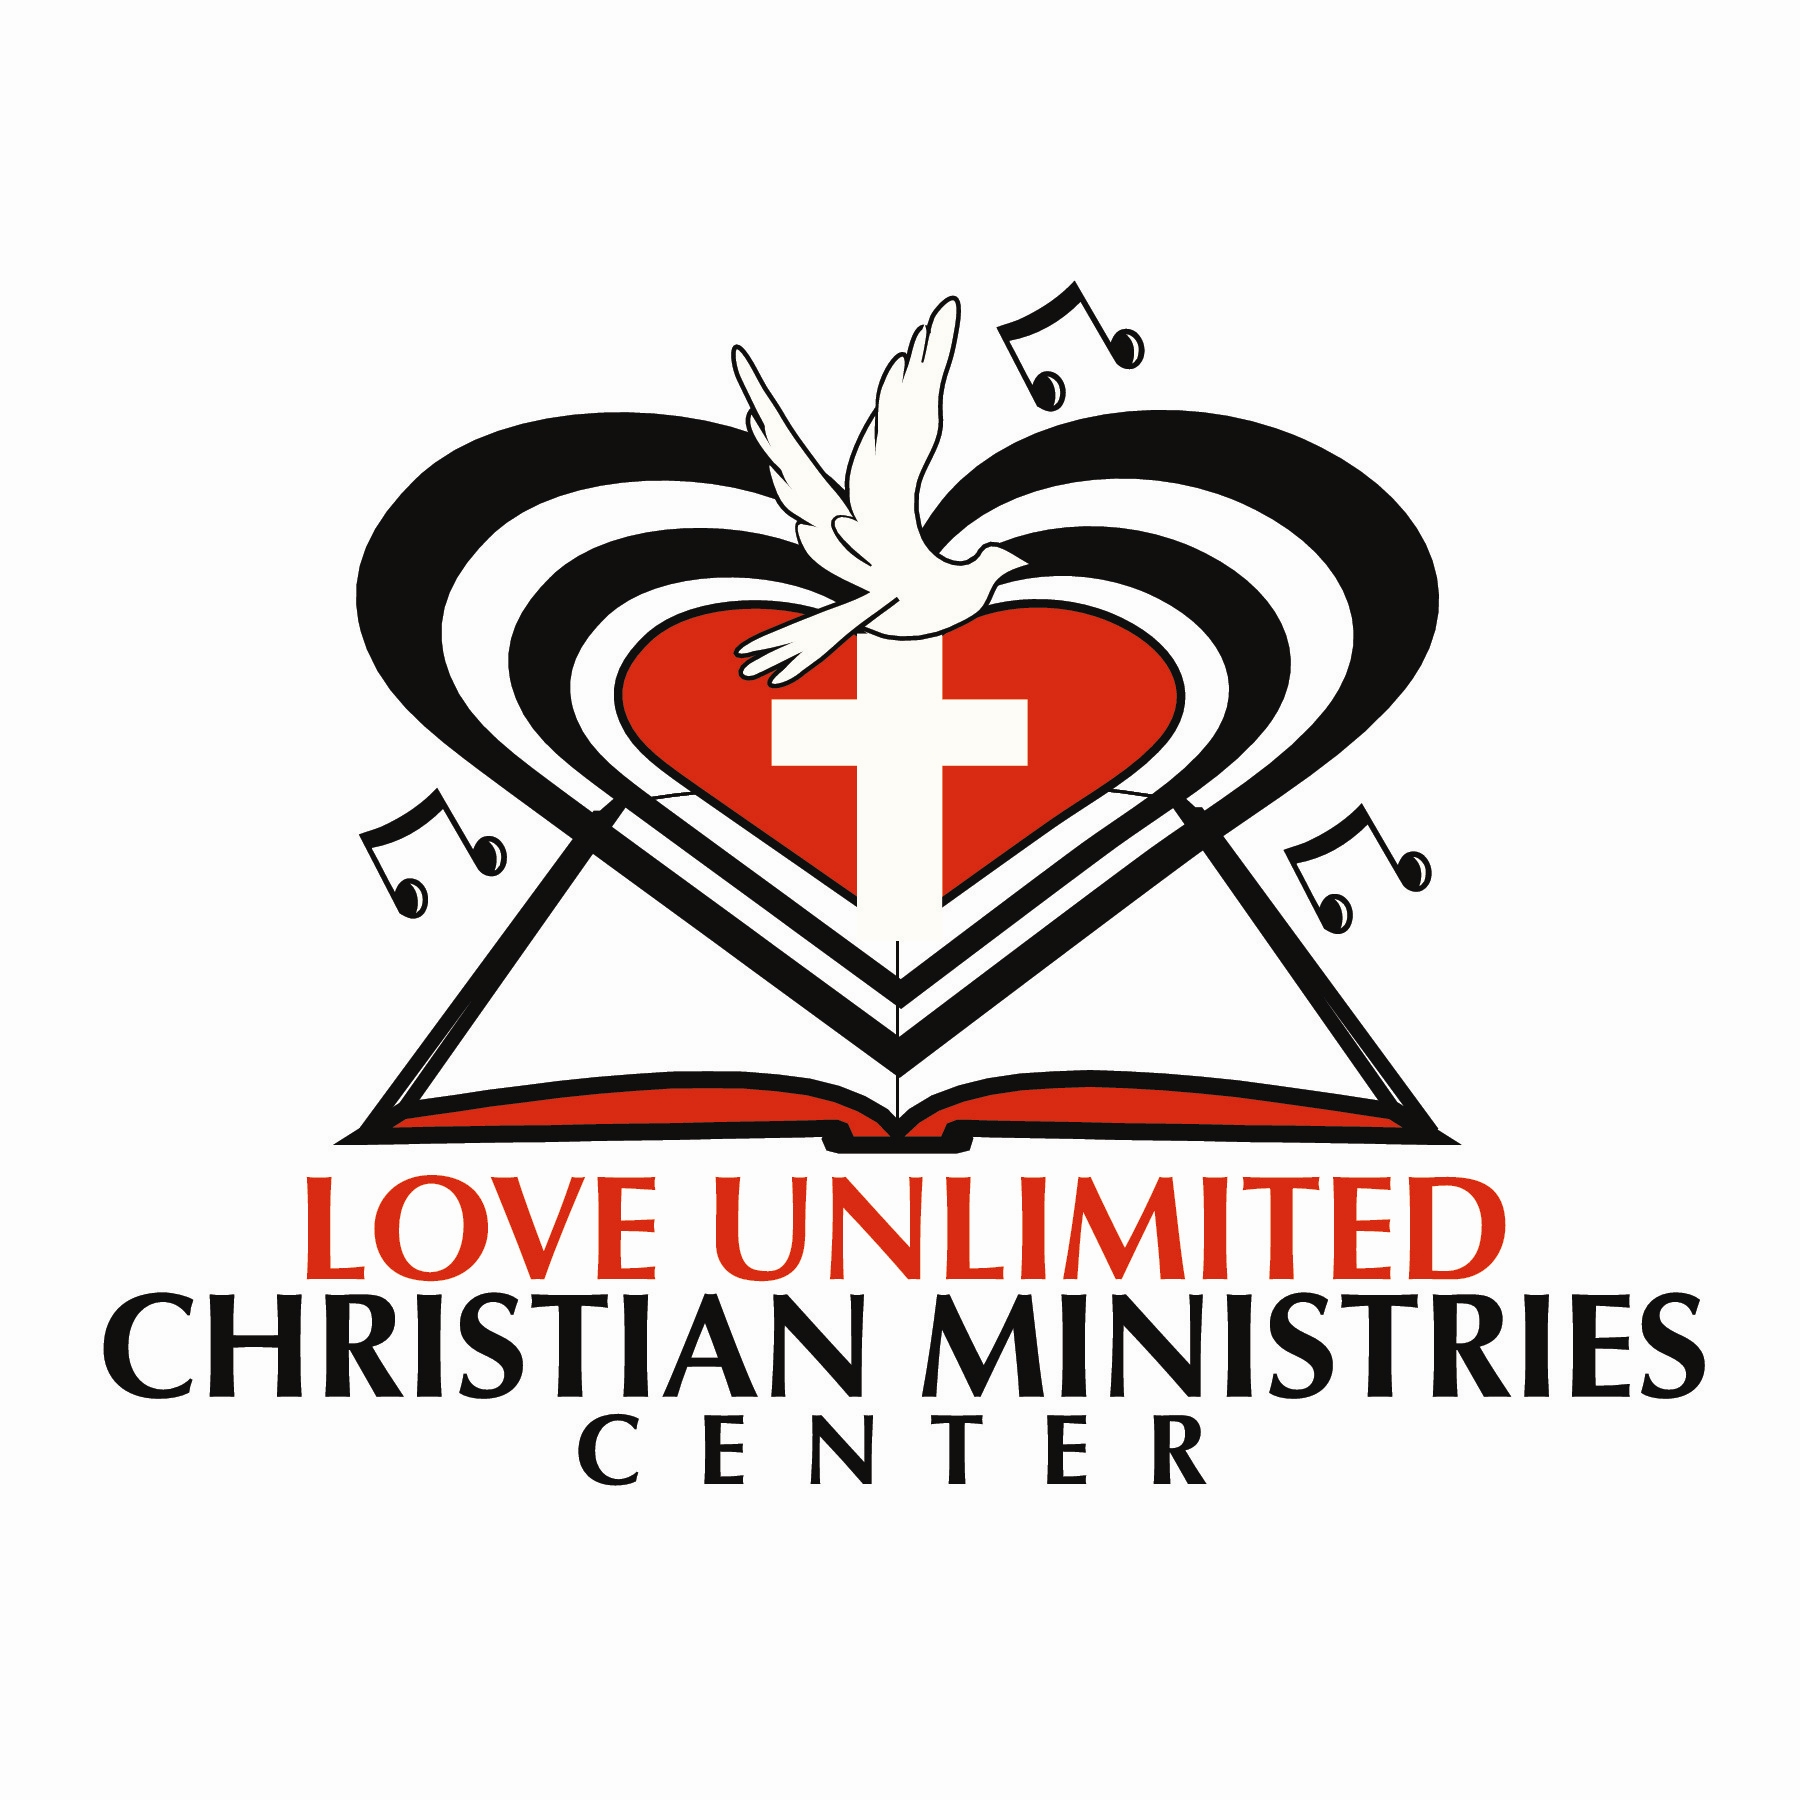 Love Unlimited Christian Ministries Center of Chicago, IL